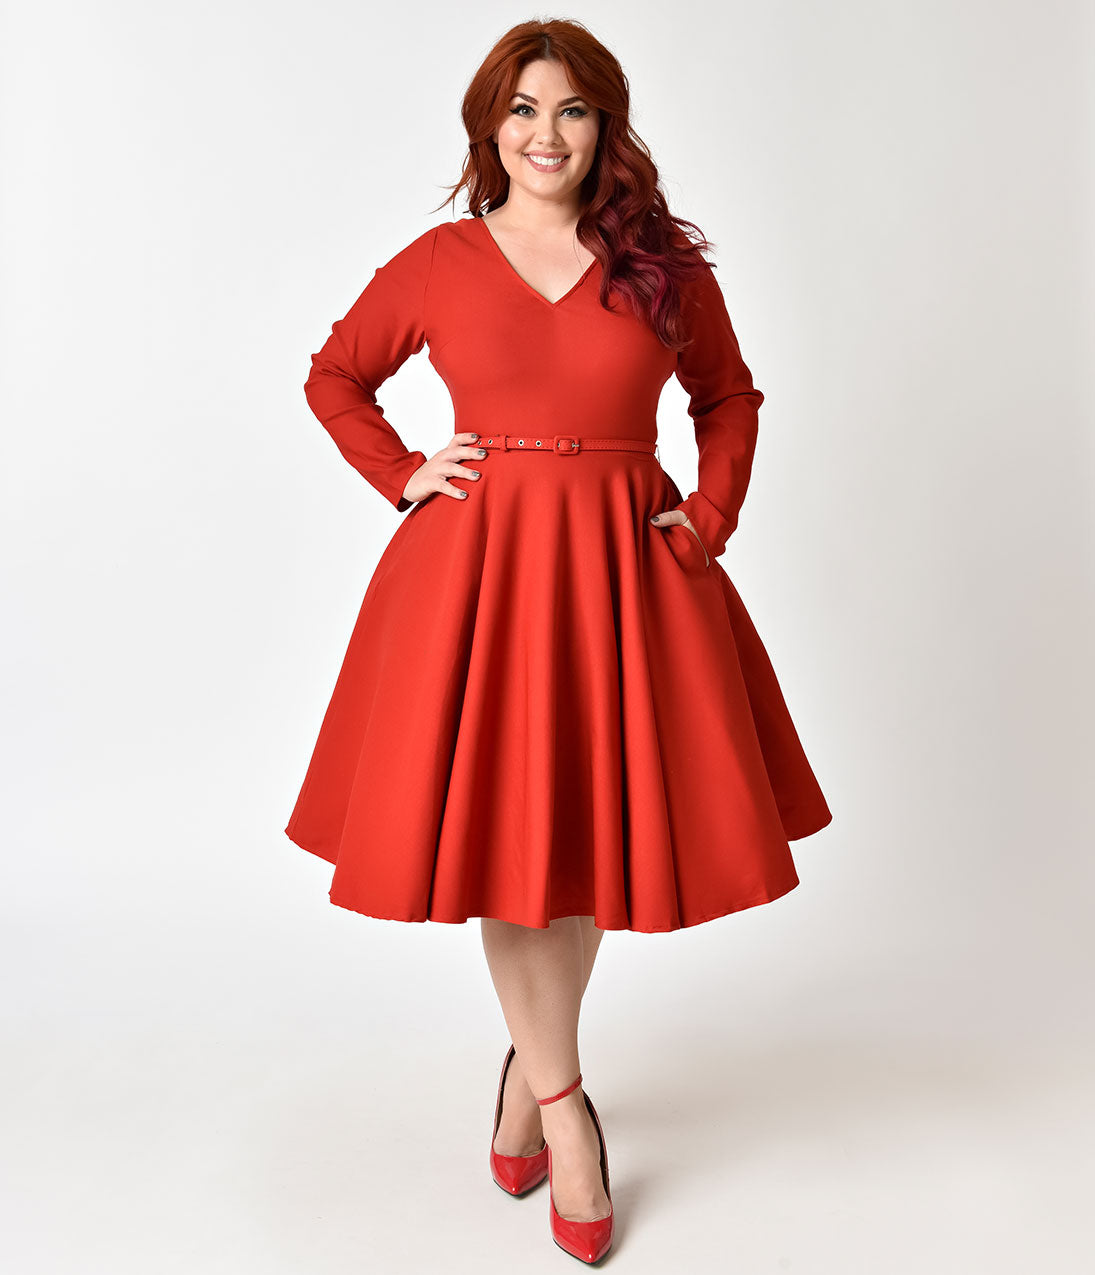 1950s Plus Size Fashion & Clothing History 1950s Style Red Stretch Long Sleeve Maude Swing Dress $74.00 AT vintagedancer.com